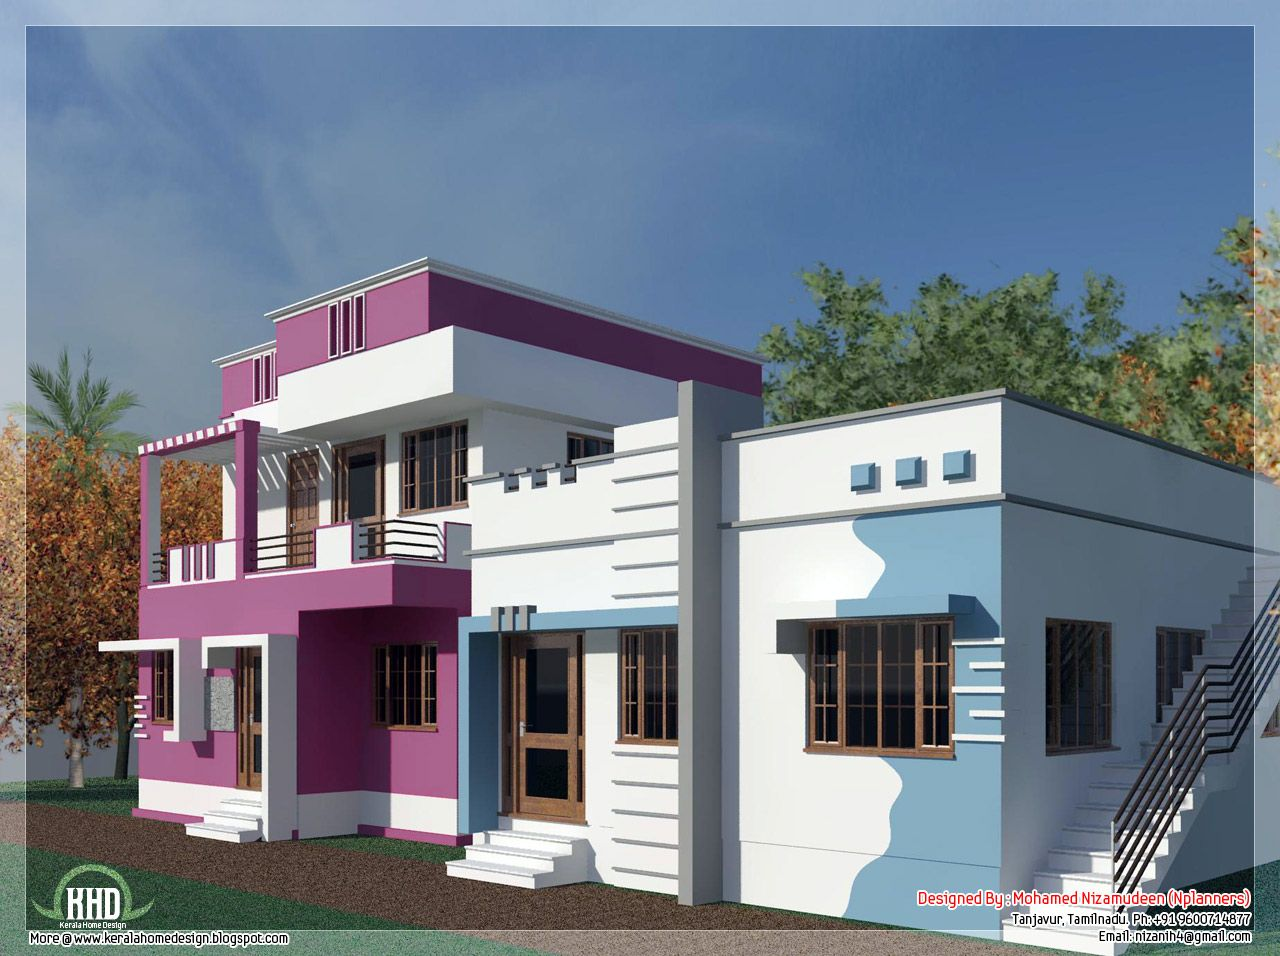 tamilnadu model home design in 3000 sqfeet kerala home design - Model Home Designer